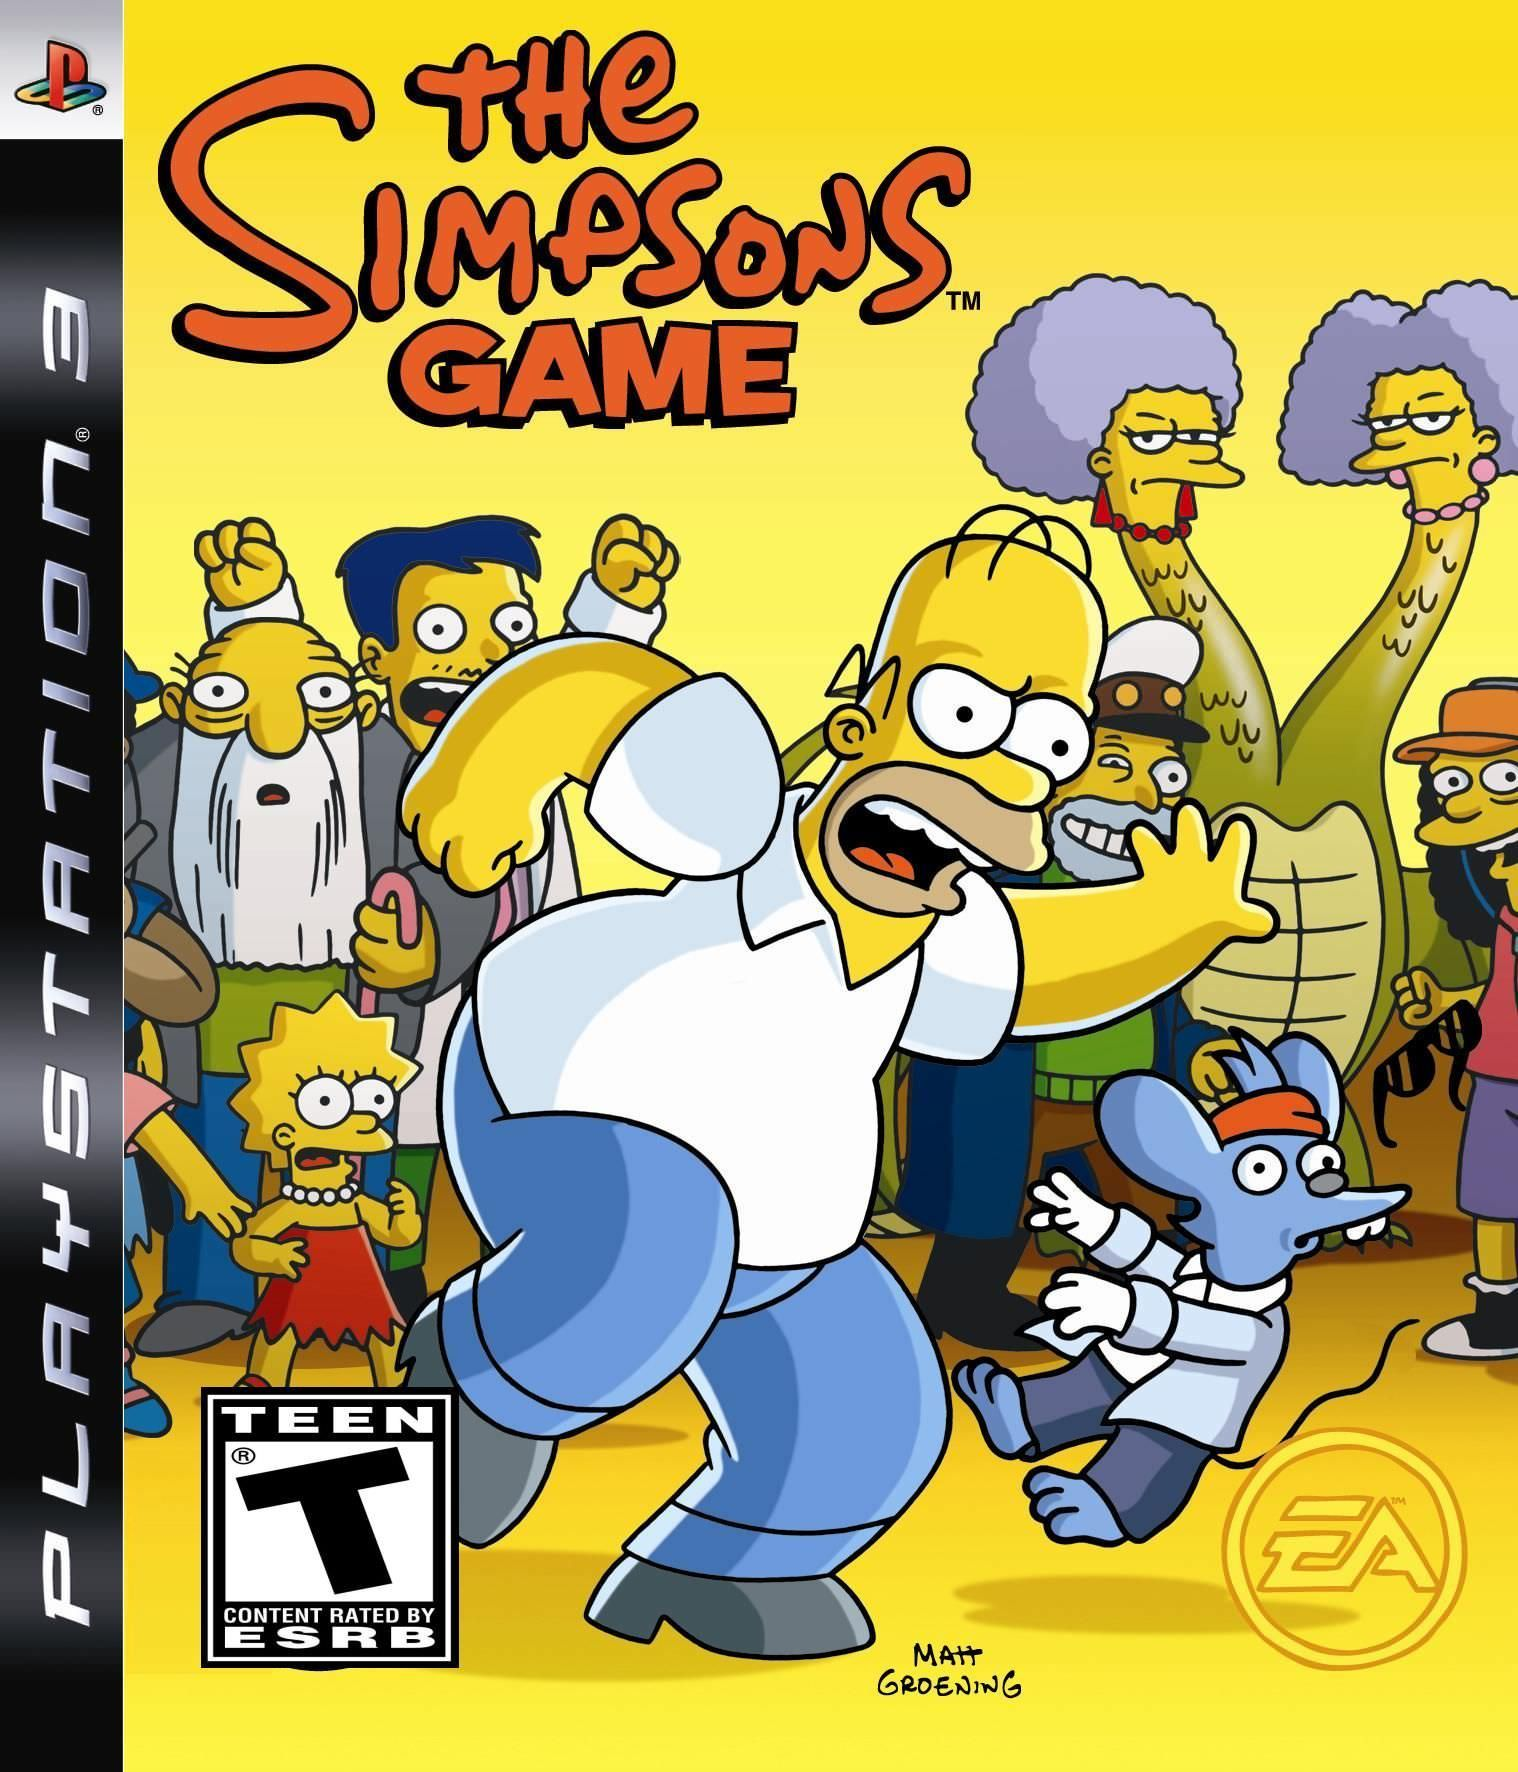 Pin by Rachael Bradford on Ps3 The simpsons game, The